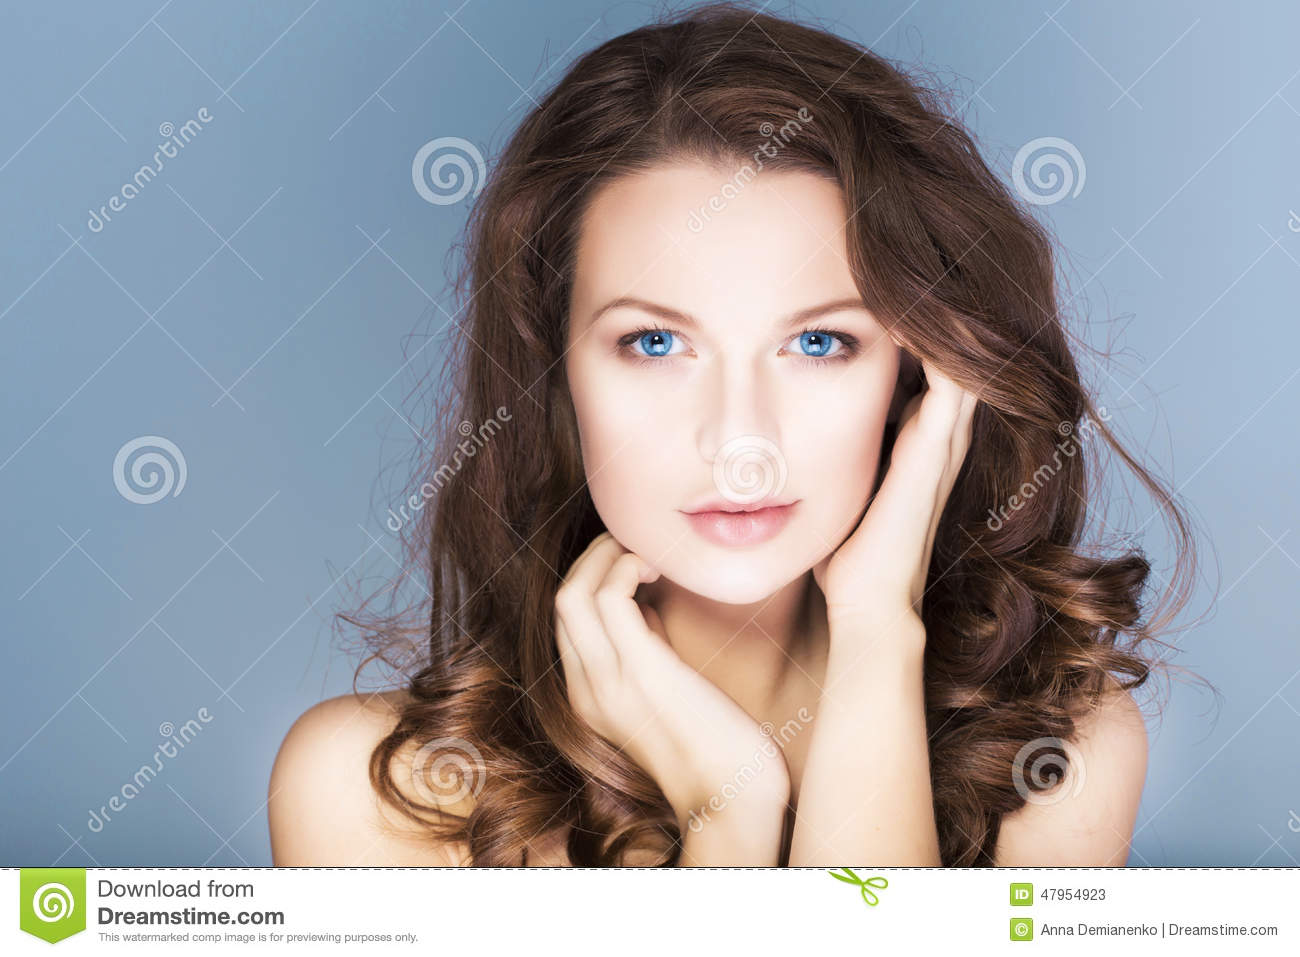 Brunette woman with blue eyes without make up, natural flawless skin and hands near her face